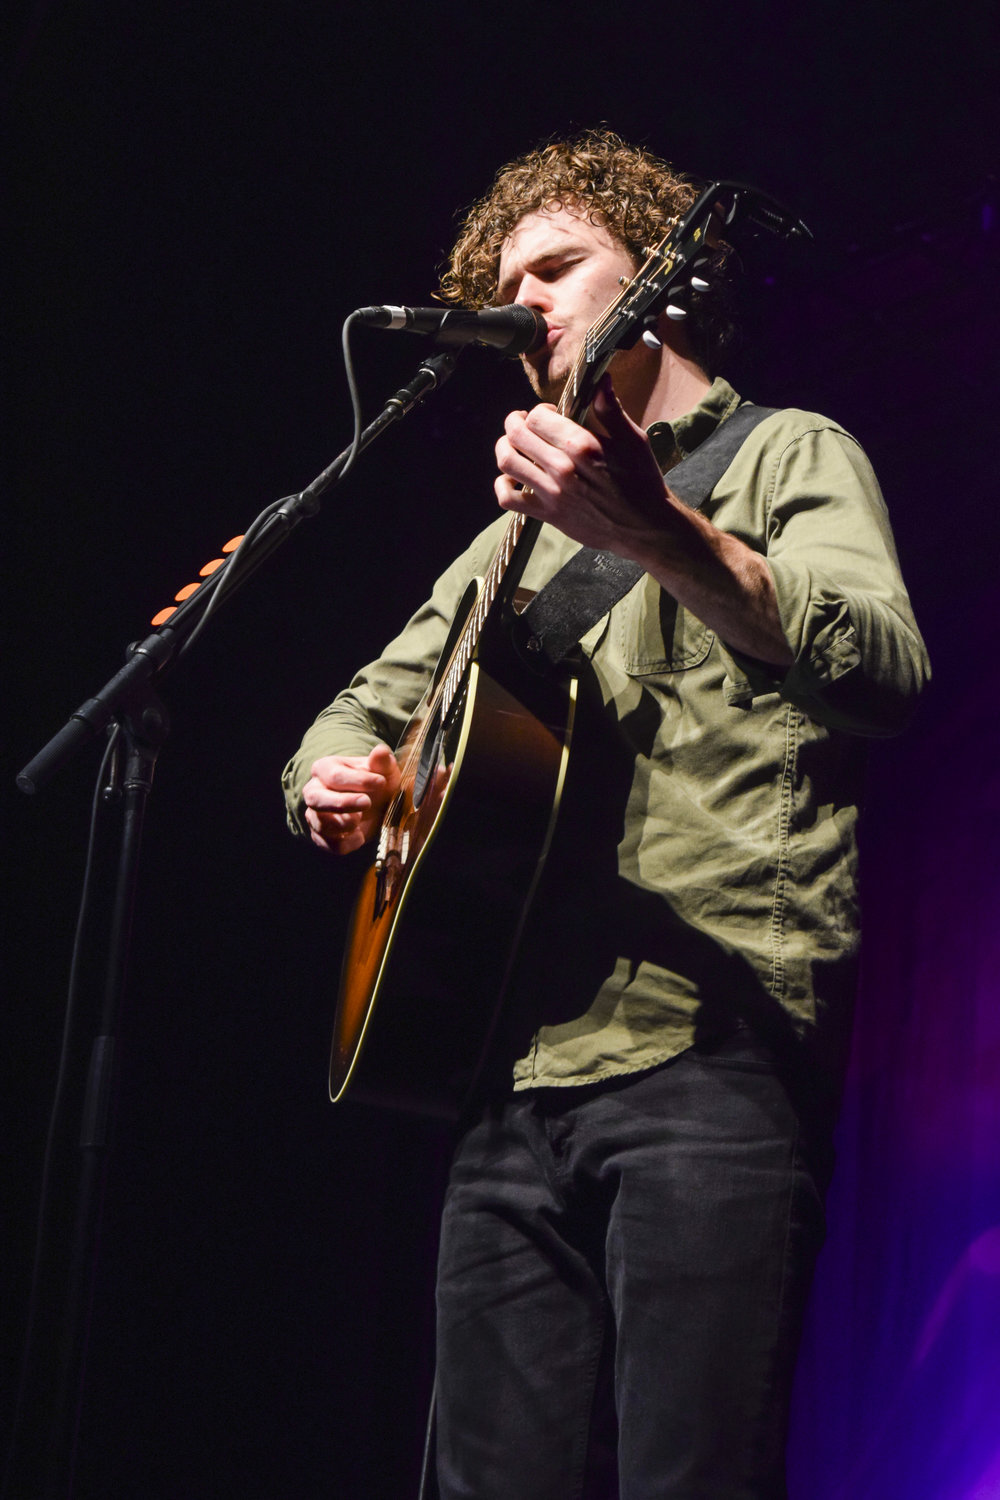 VanceJoy_Feb2016DSC_0064_Edited_Small.jpg